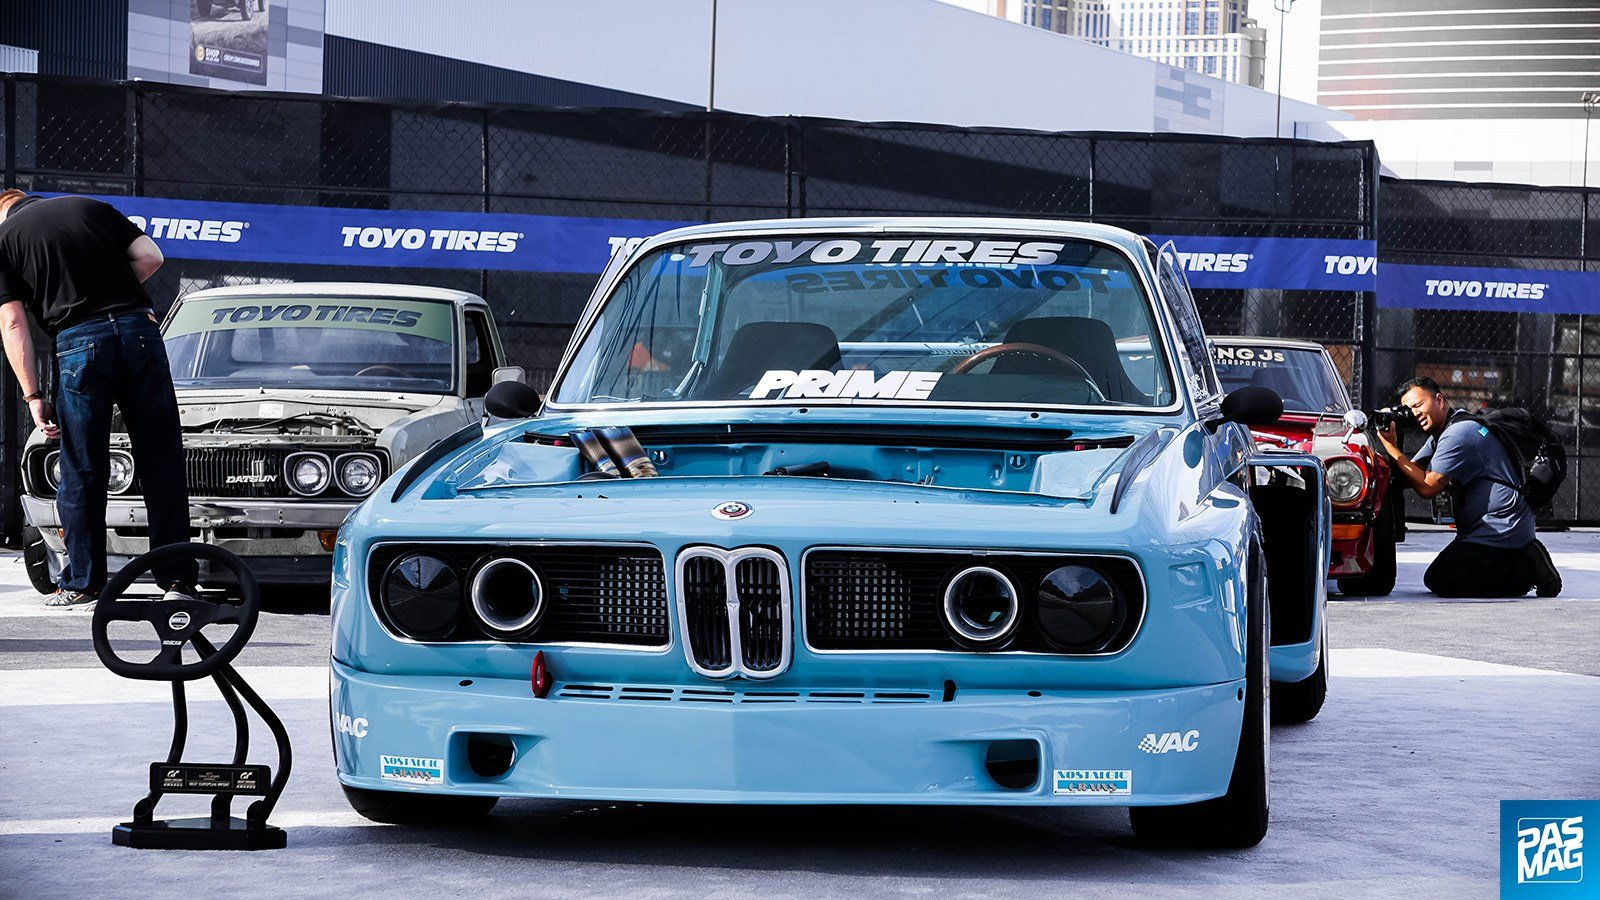 Latest Pasmag Performance Auto And Sound Sema 2018 Editor S Free Download